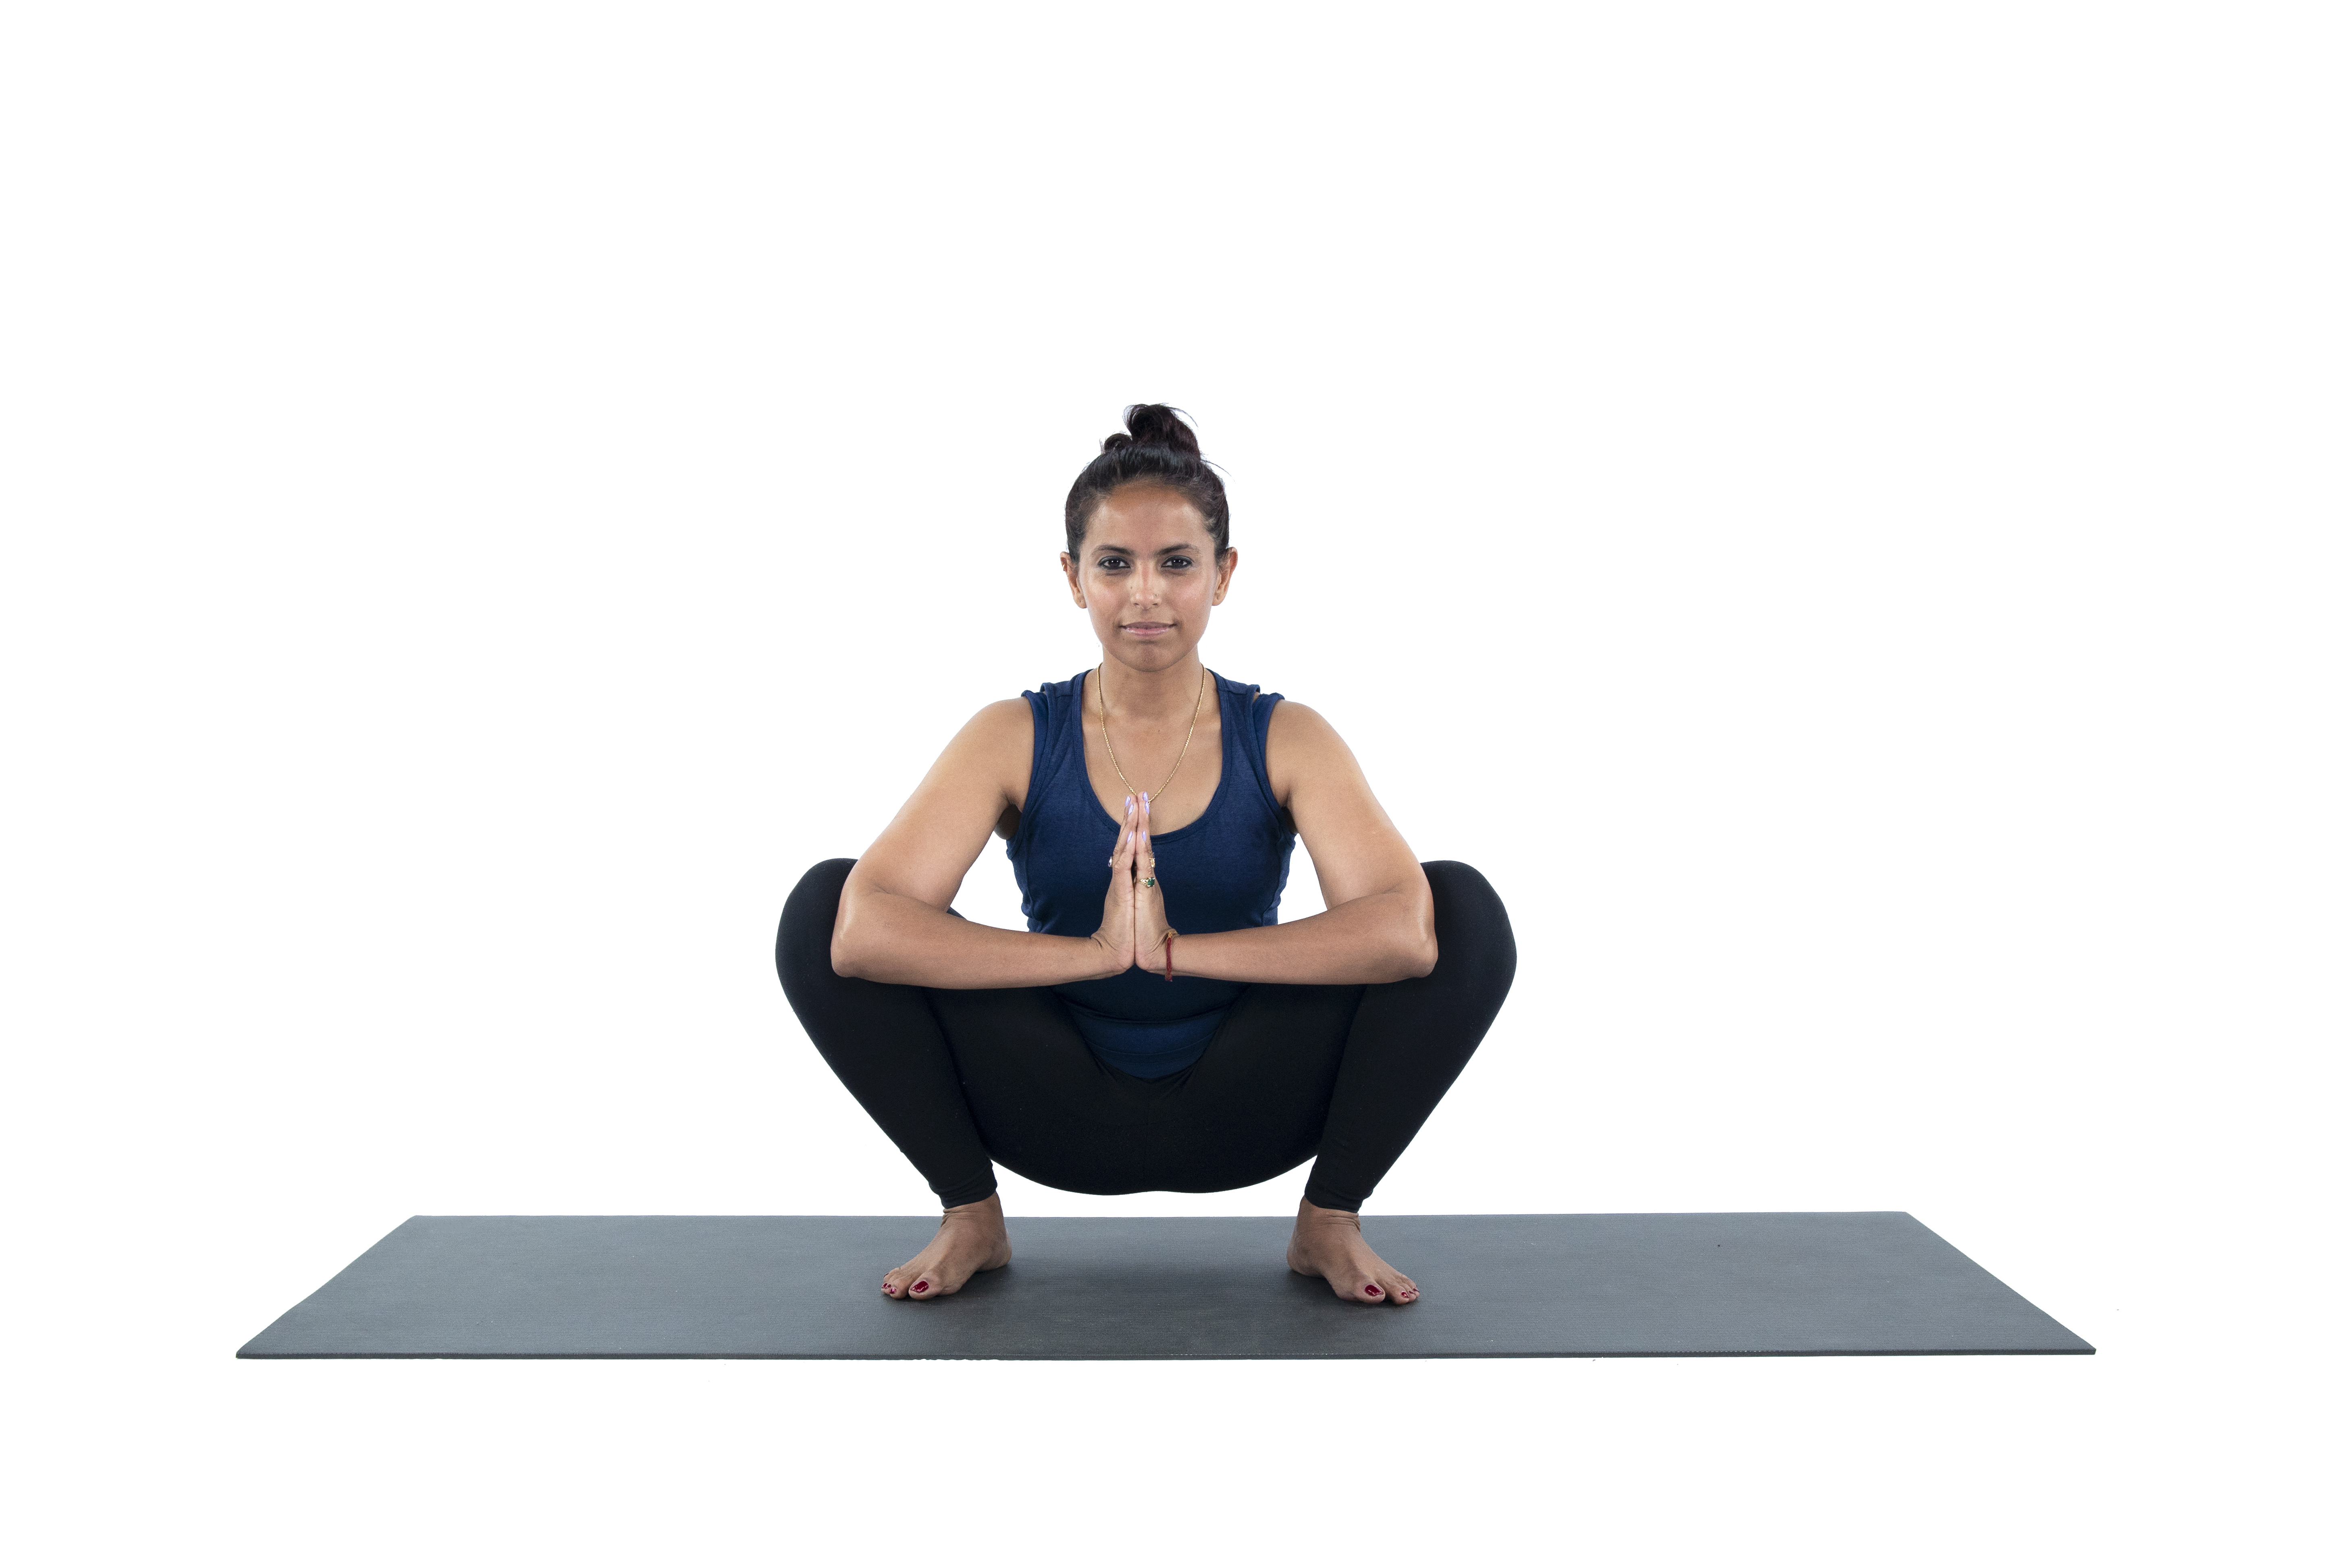 Malasana, Squat Pose,  Foot stretches, arch strengthening, beginner's yoga, foot health